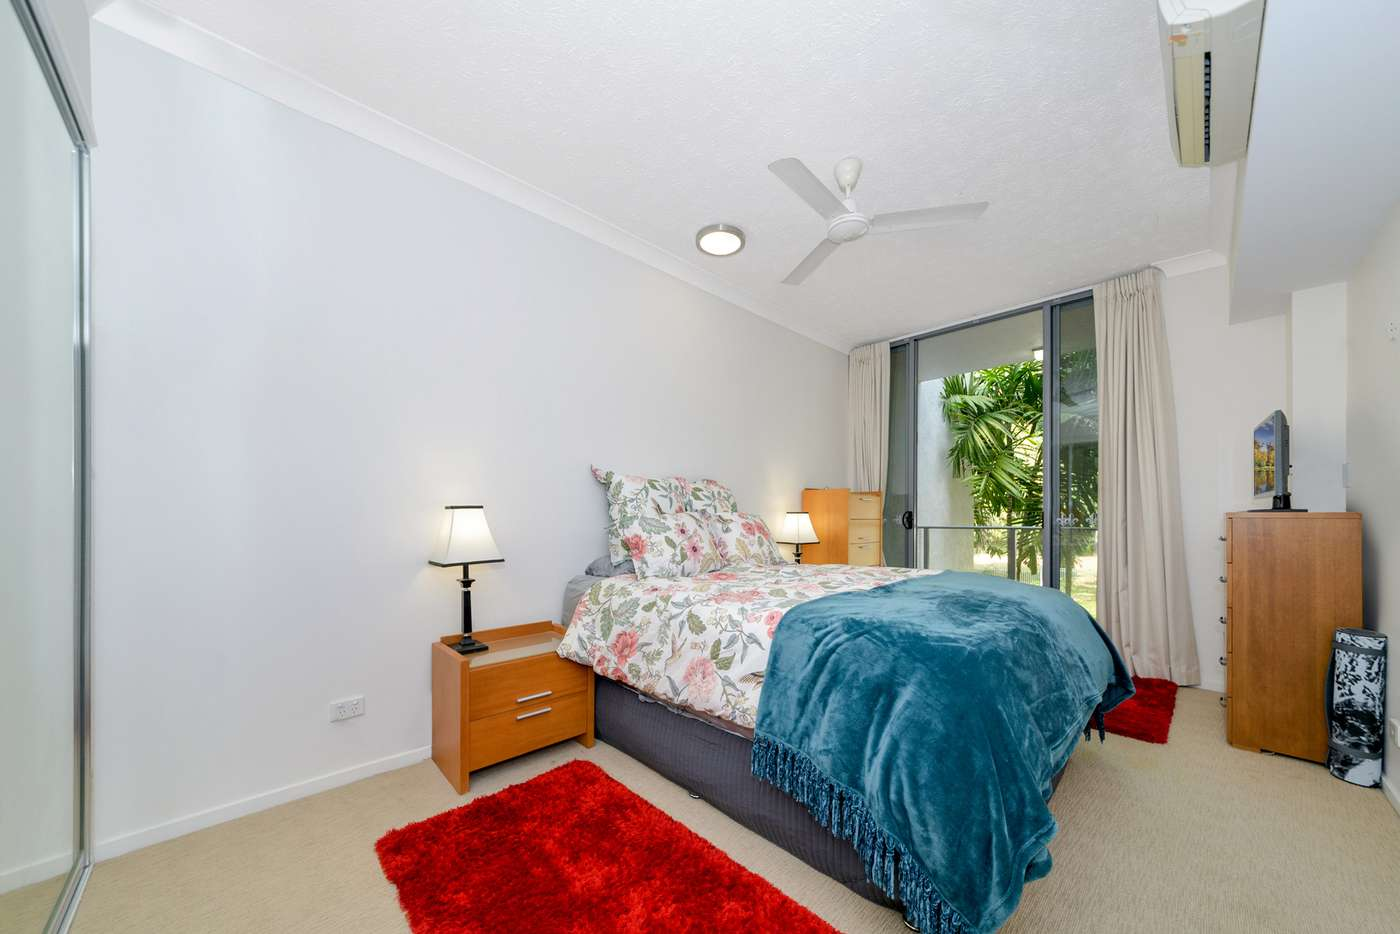 Fifth view of Homely apartment listing, 73/28 Landsborough street, North Ward QLD 4810